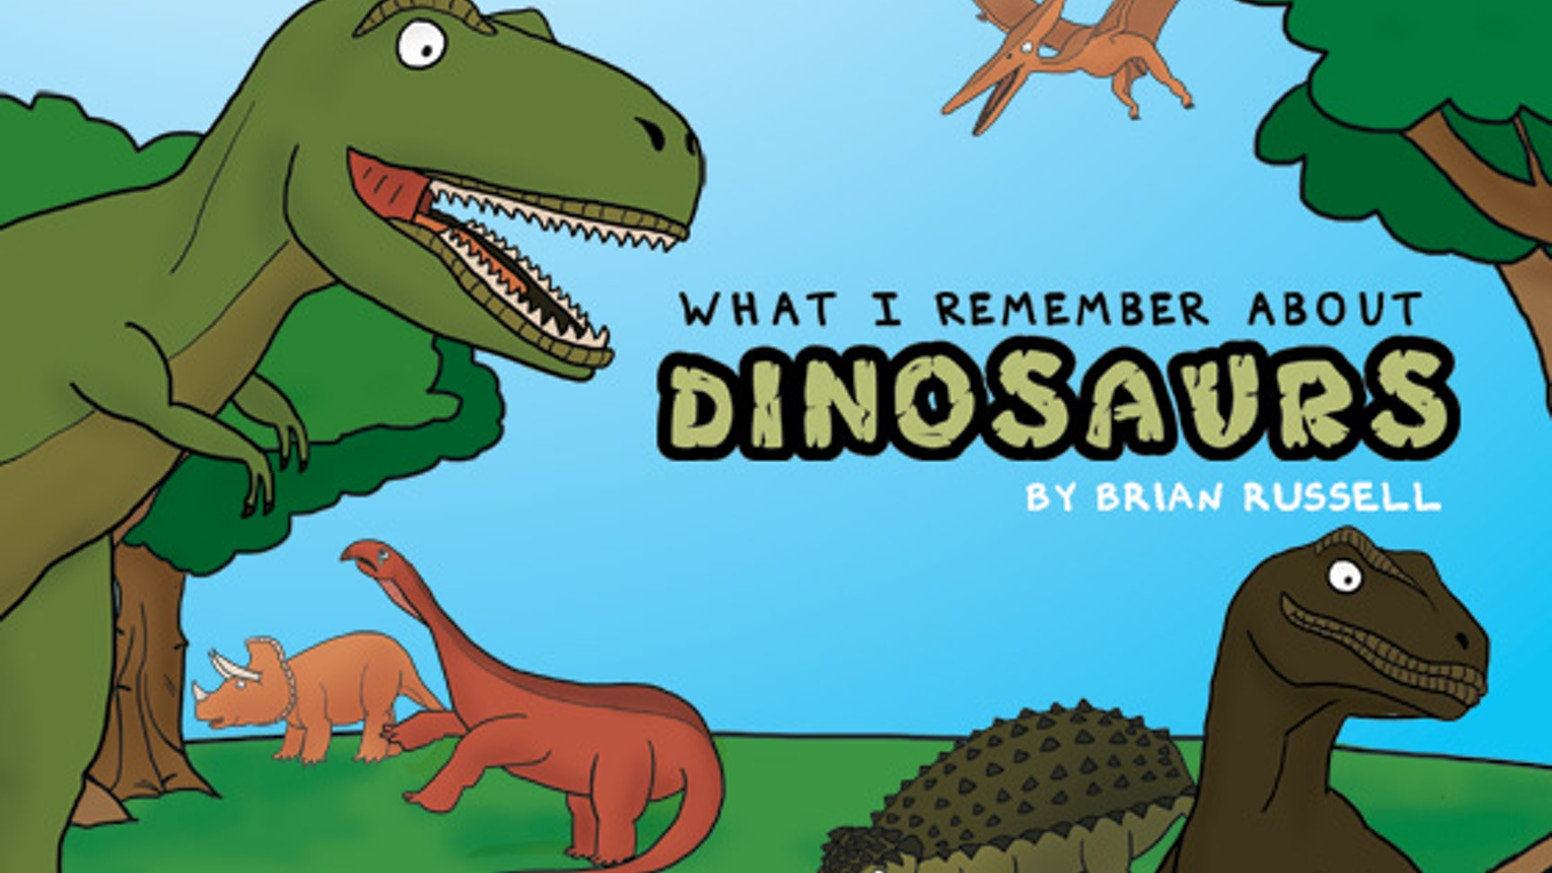 A quirky and humorous children's book about dinosaur facts I learned nearly 30 years ago to share my love for dinosaurs!